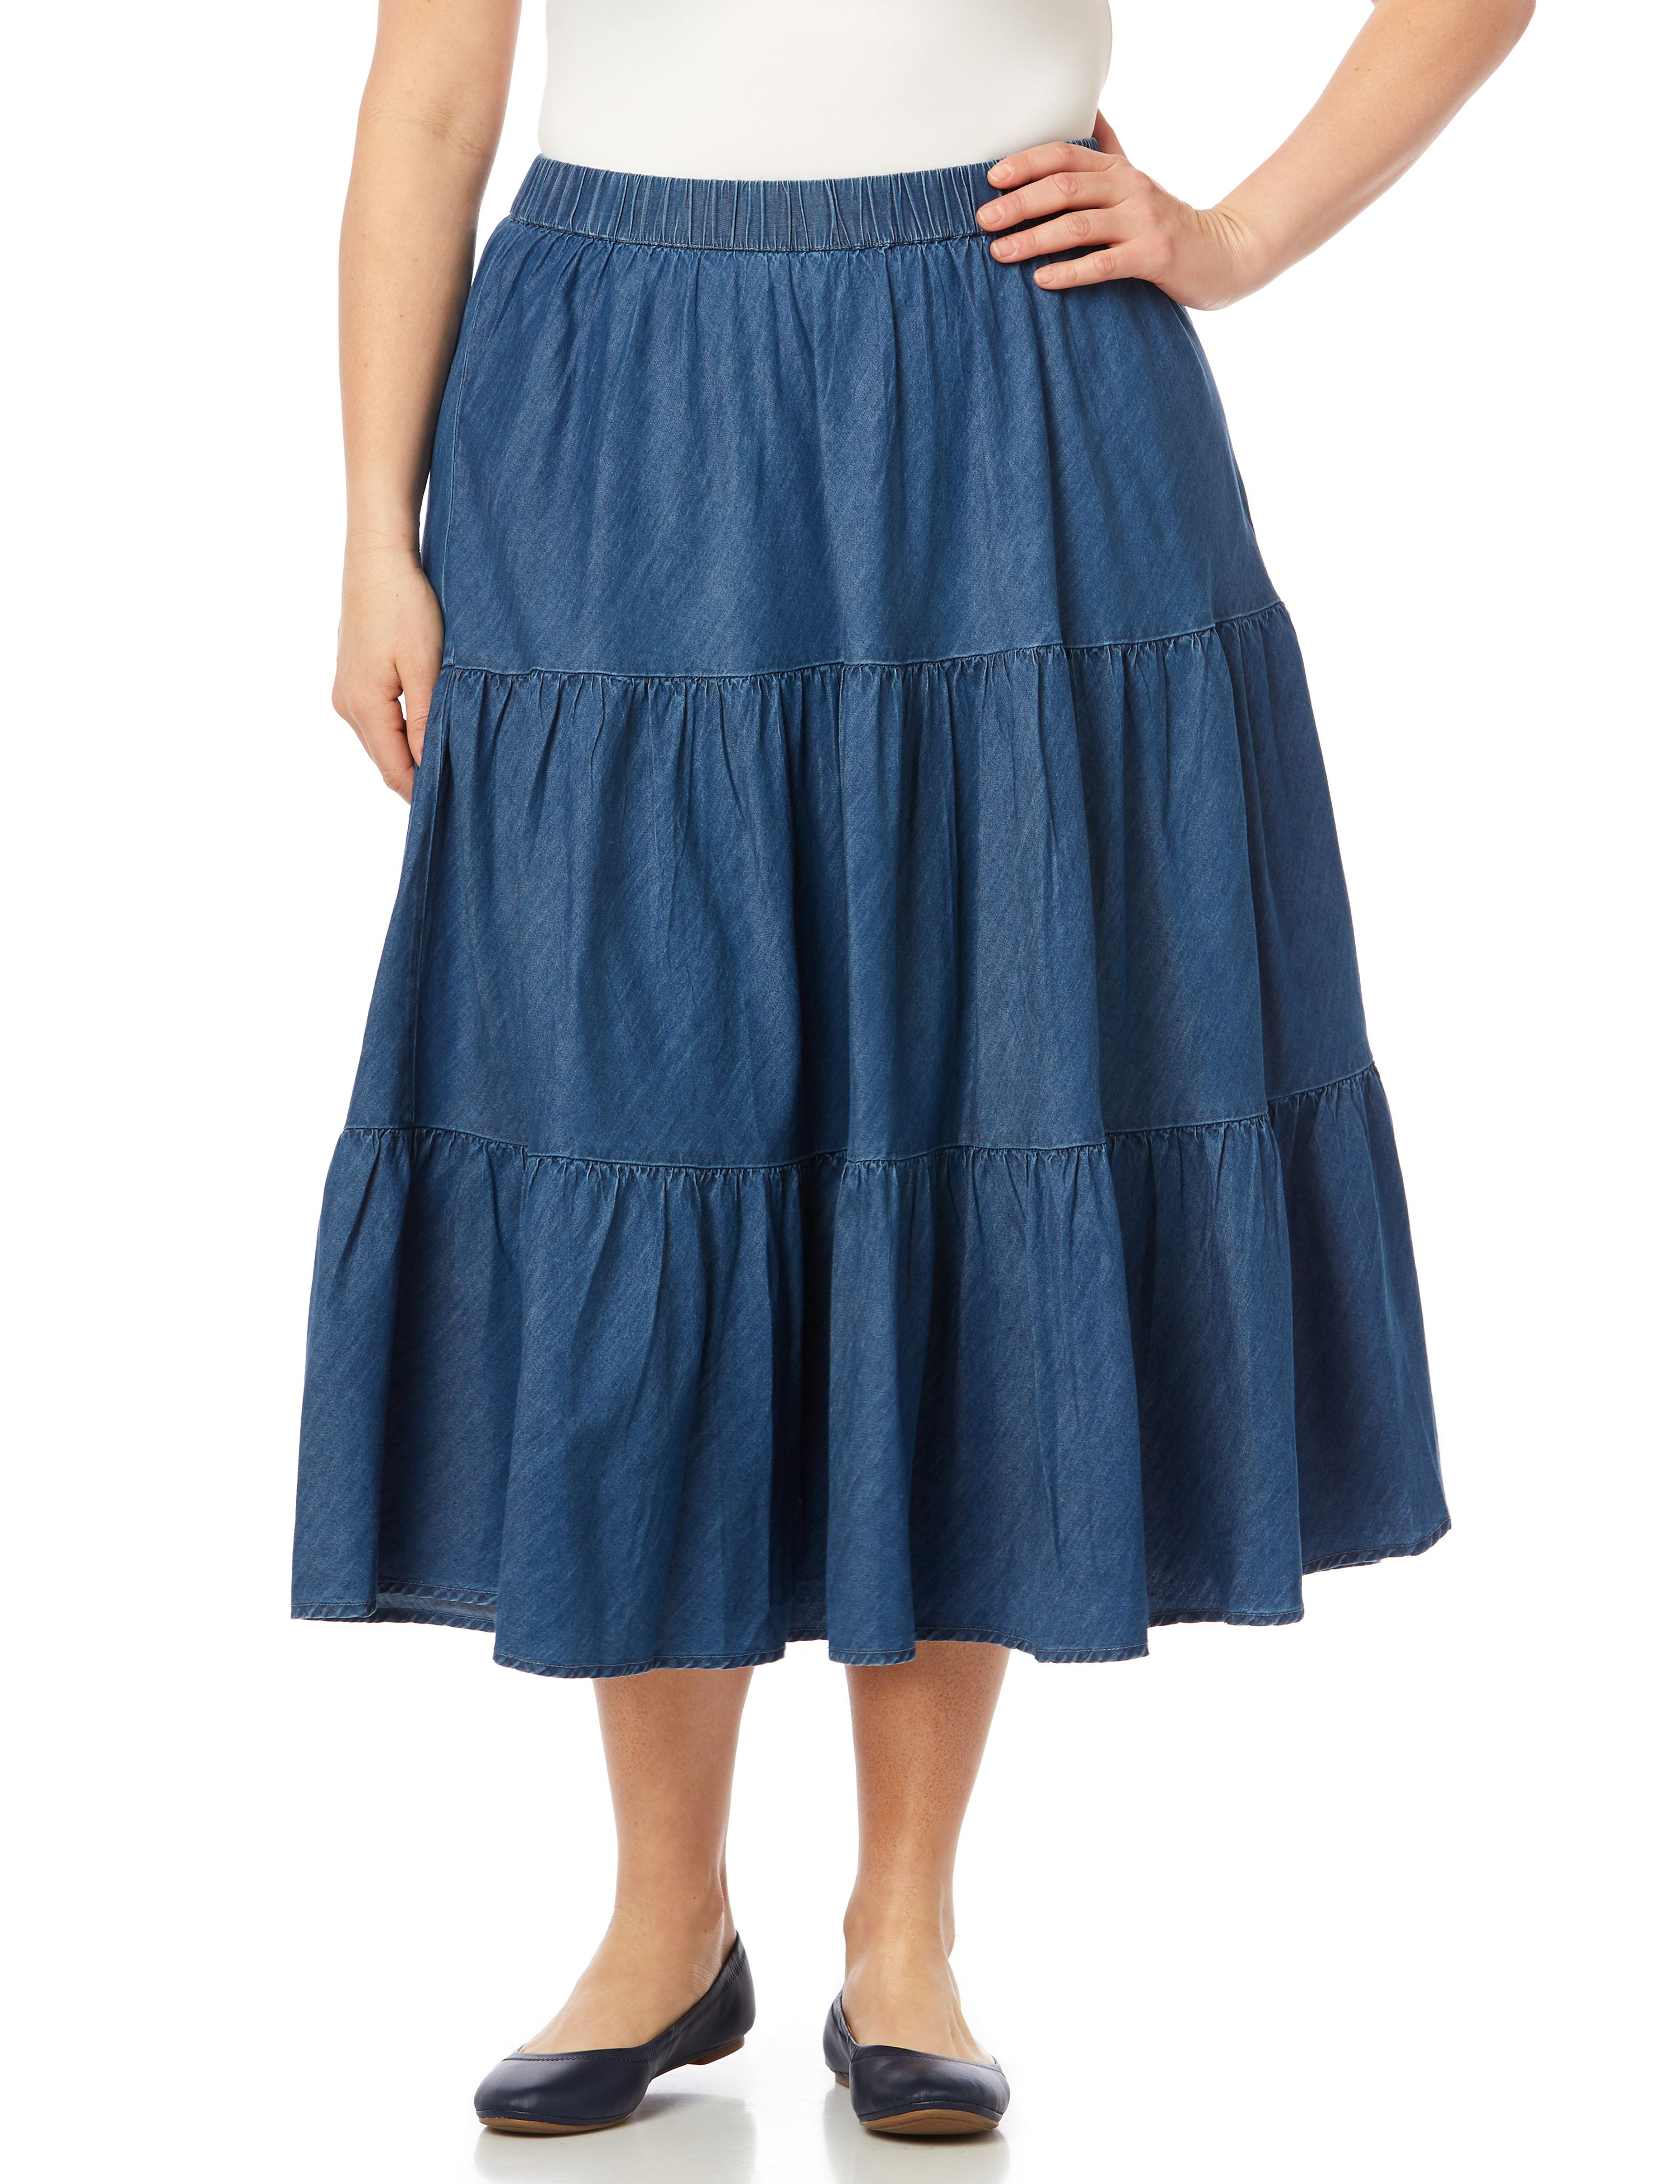 Tiered Flounce Skirt 1088712 TENCEL TRIPLE TIER SKIRT MP-300092774